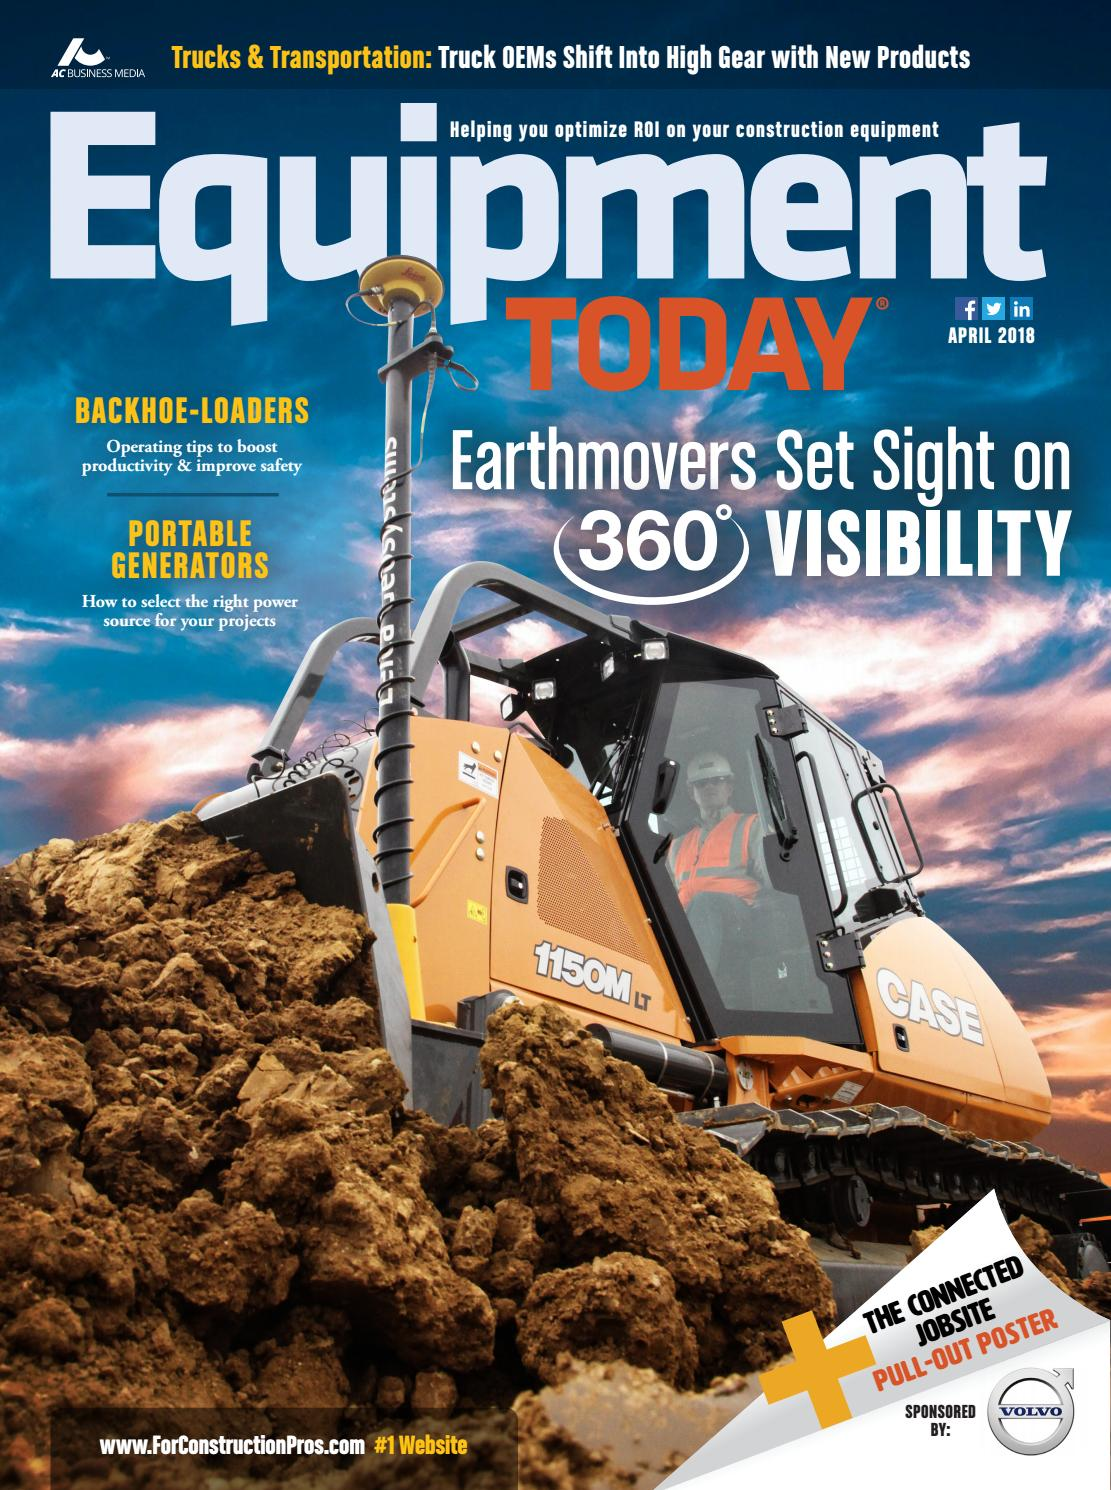 Equipment Today April 2018 by ForConstructionPros com - issuu